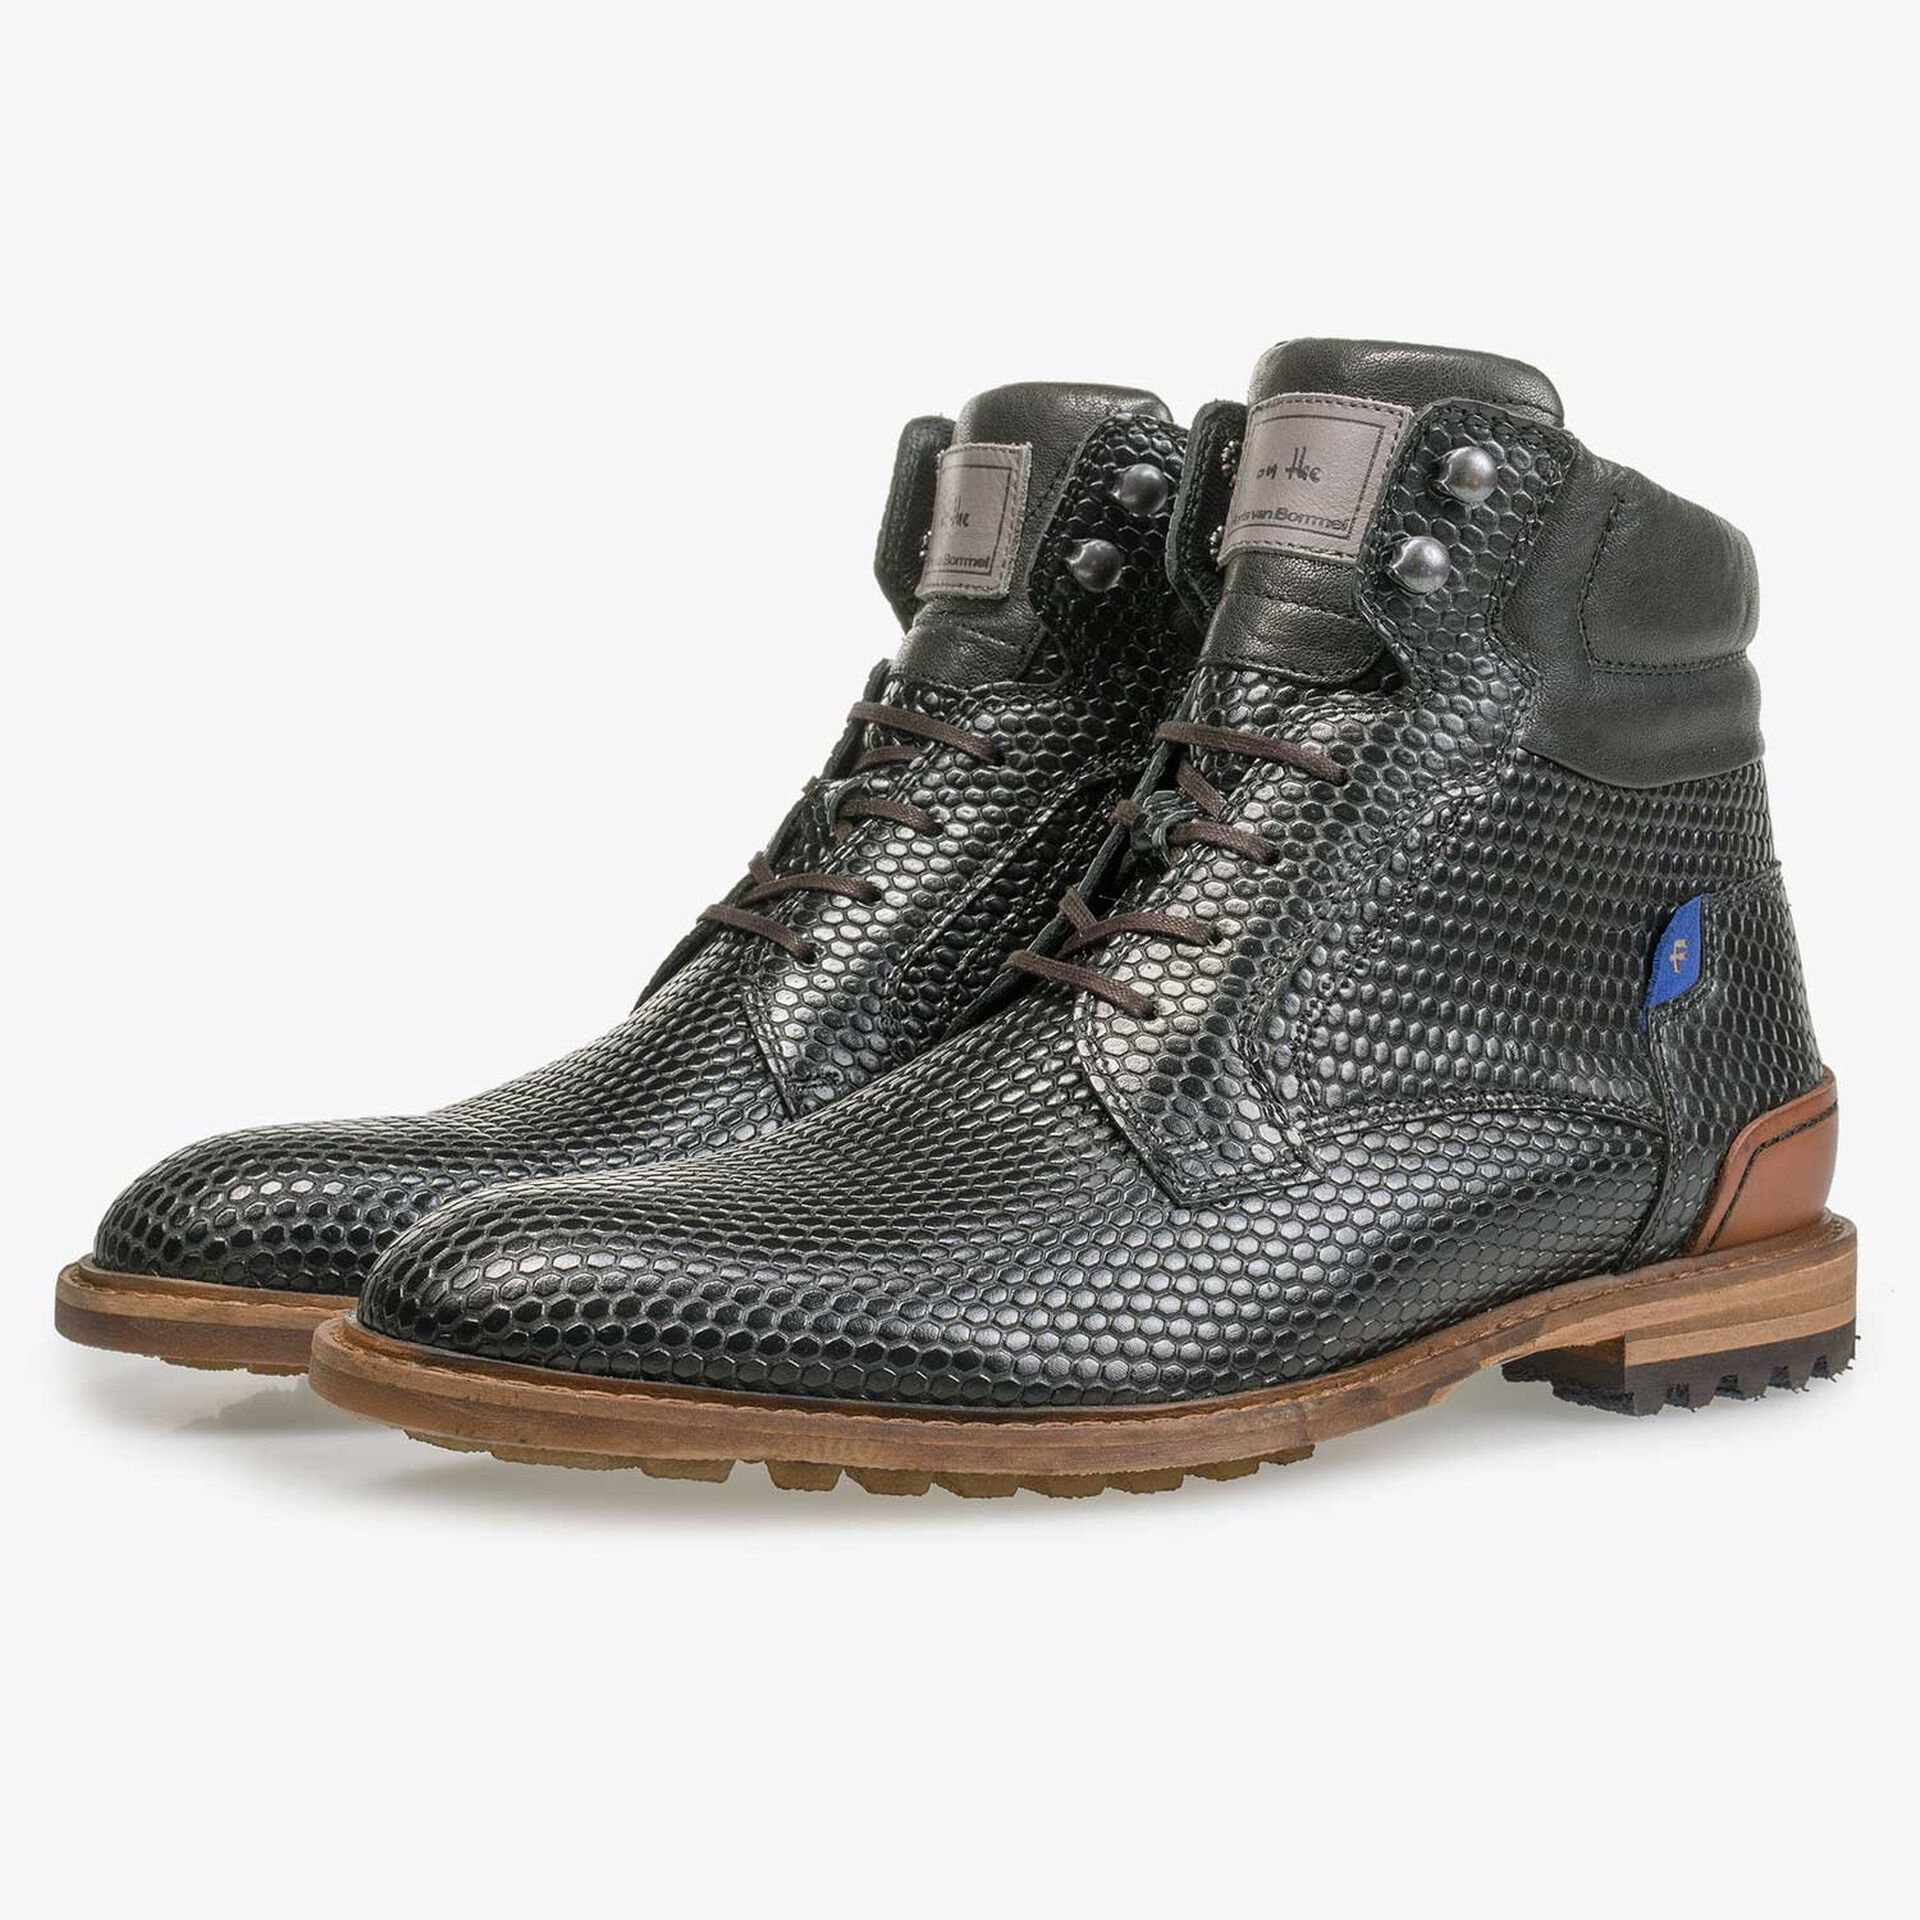 Black leather lace boot with structural print